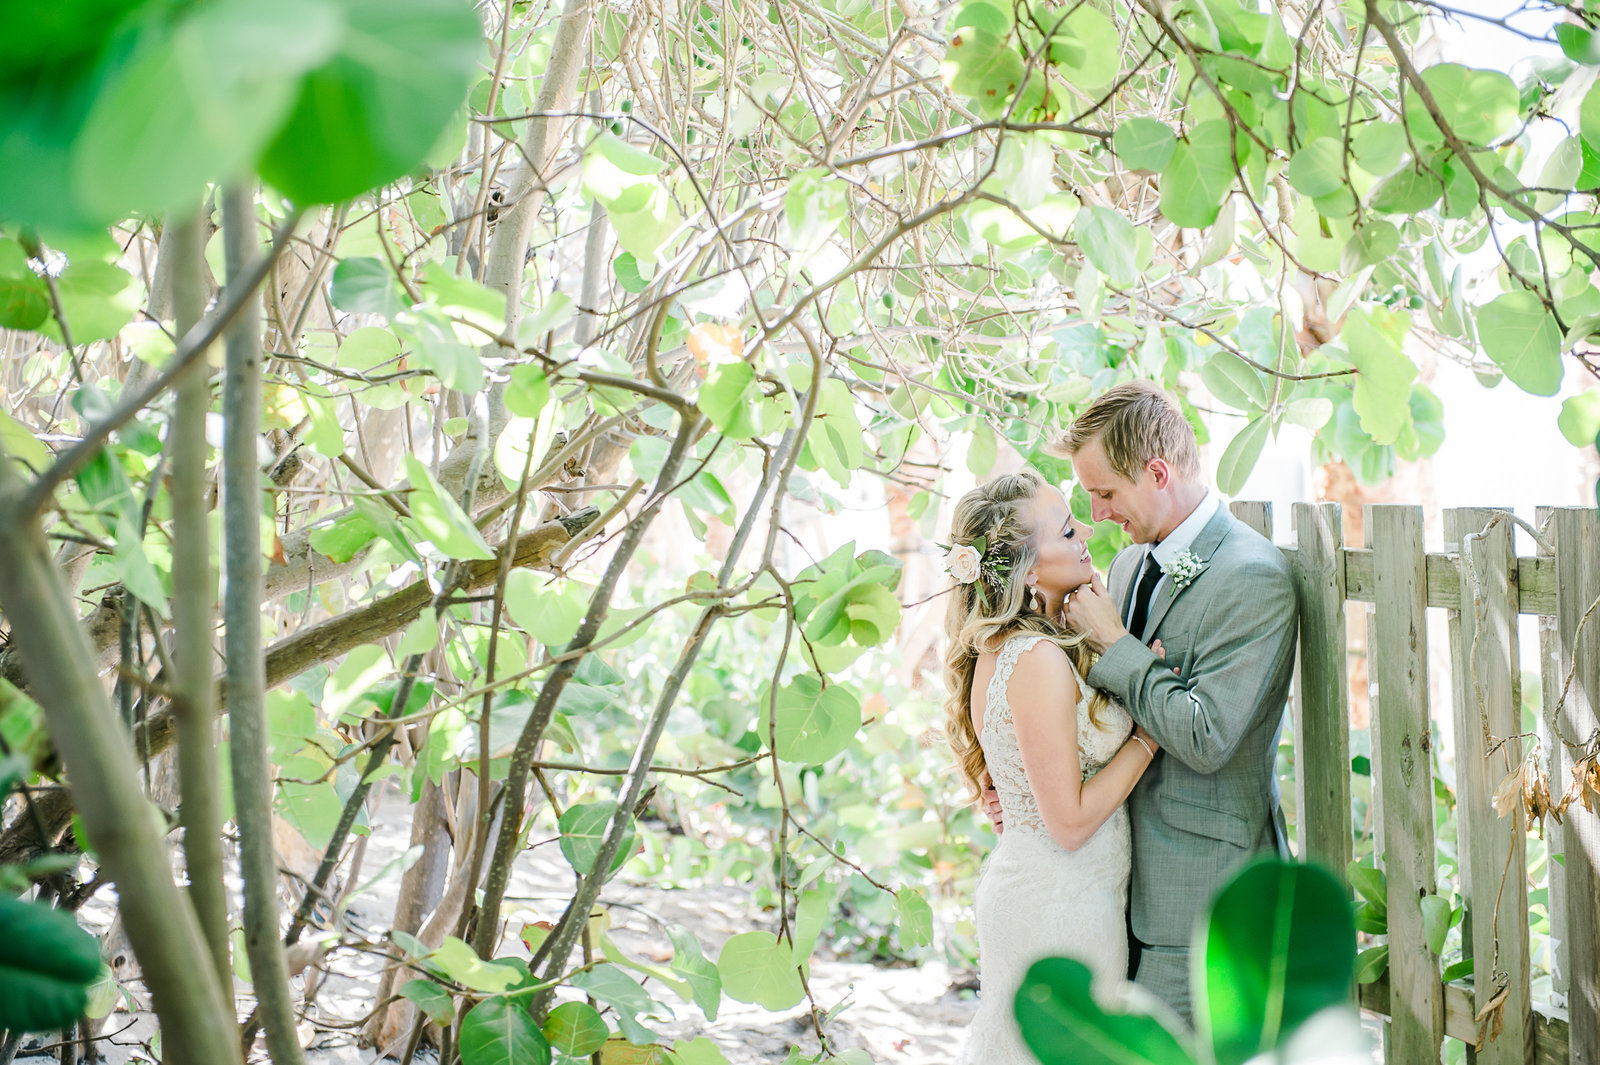 Secret Garden Wedding - Hilton Singer Island Wedding - Palm Beach Wedding Photography by Palm Beach Photography, Inc.